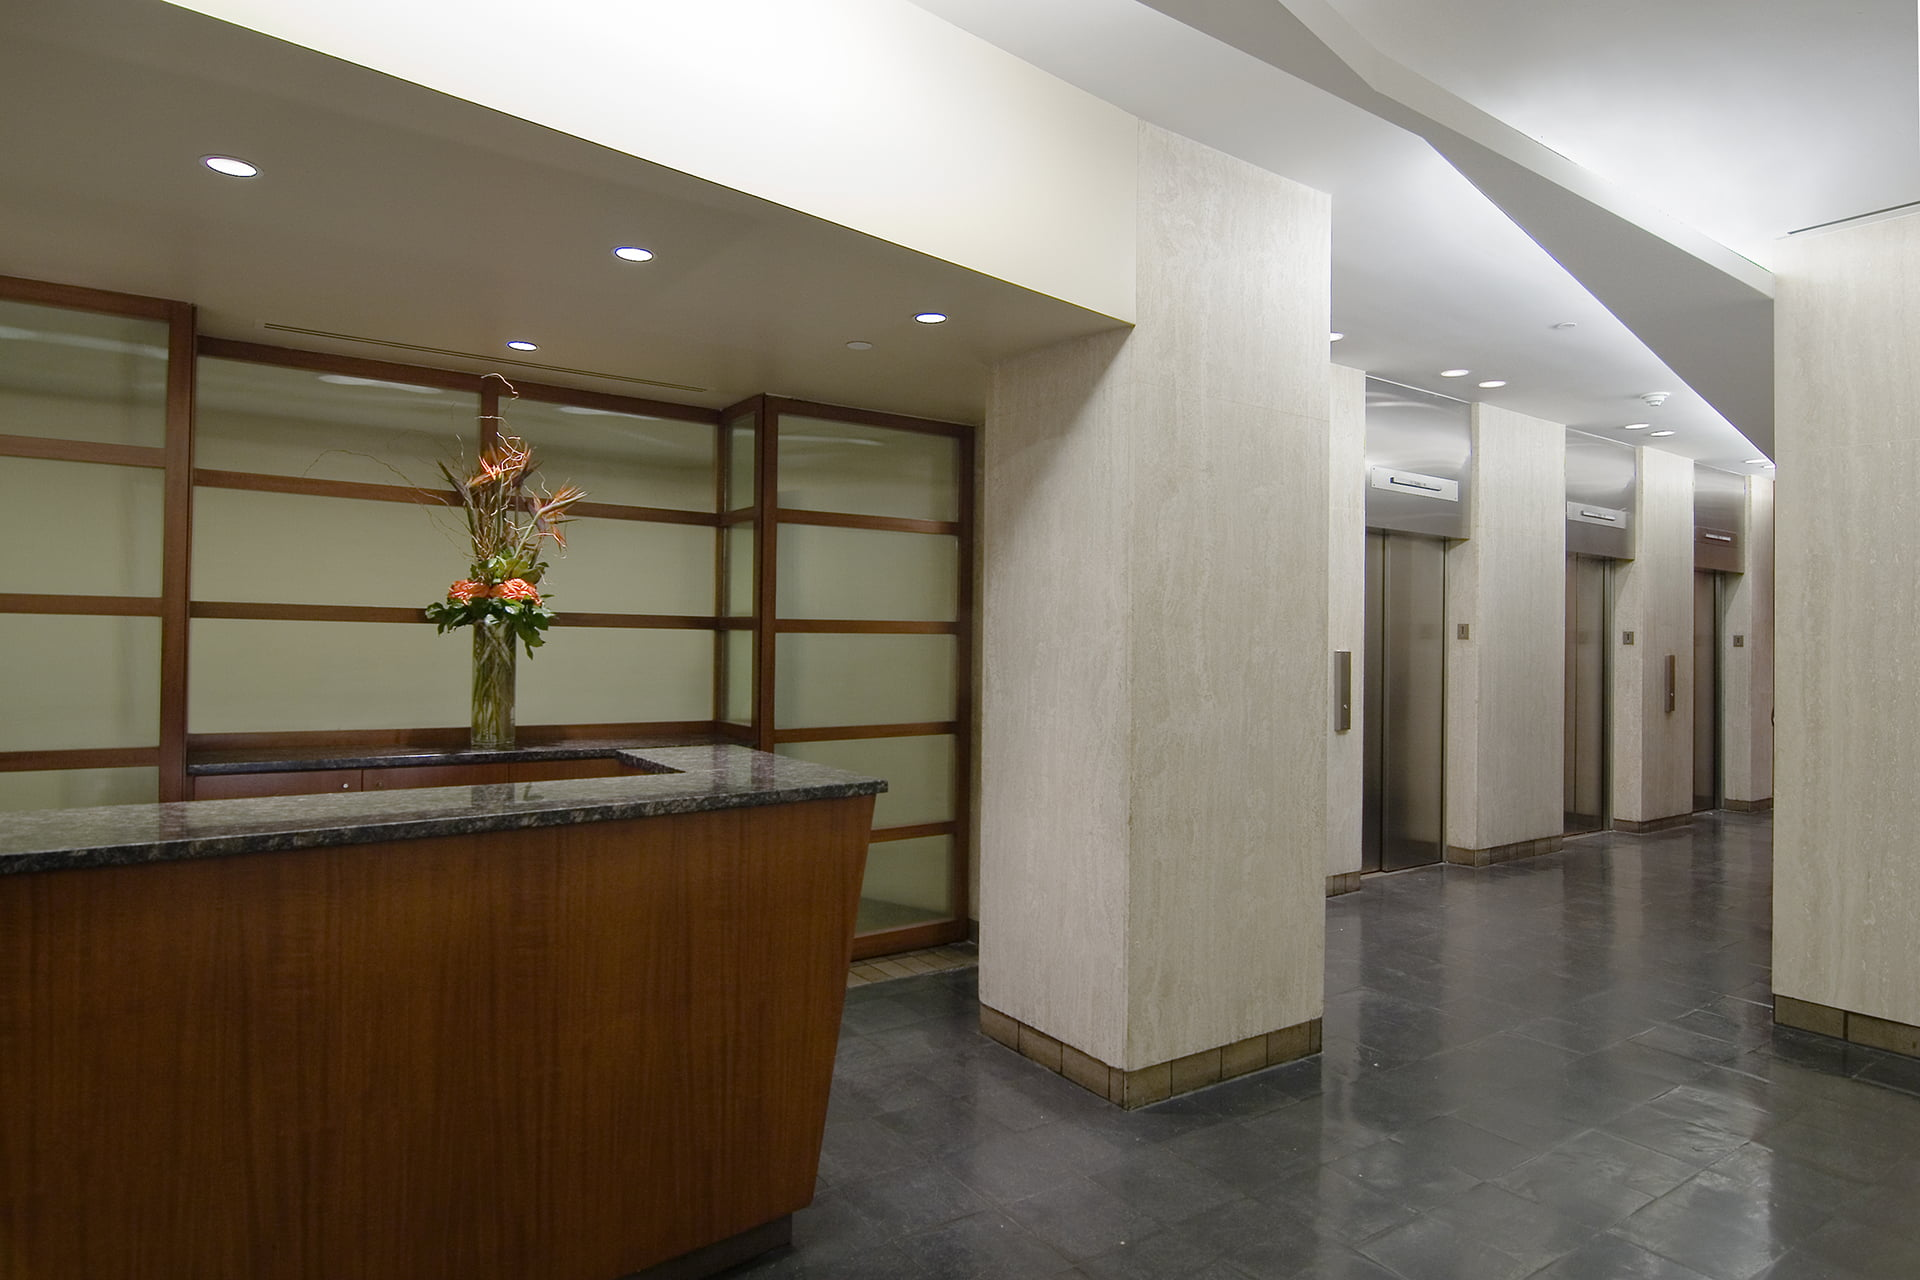 Interior lobby at 133 East 58th Street looking at security desk and elevator banks